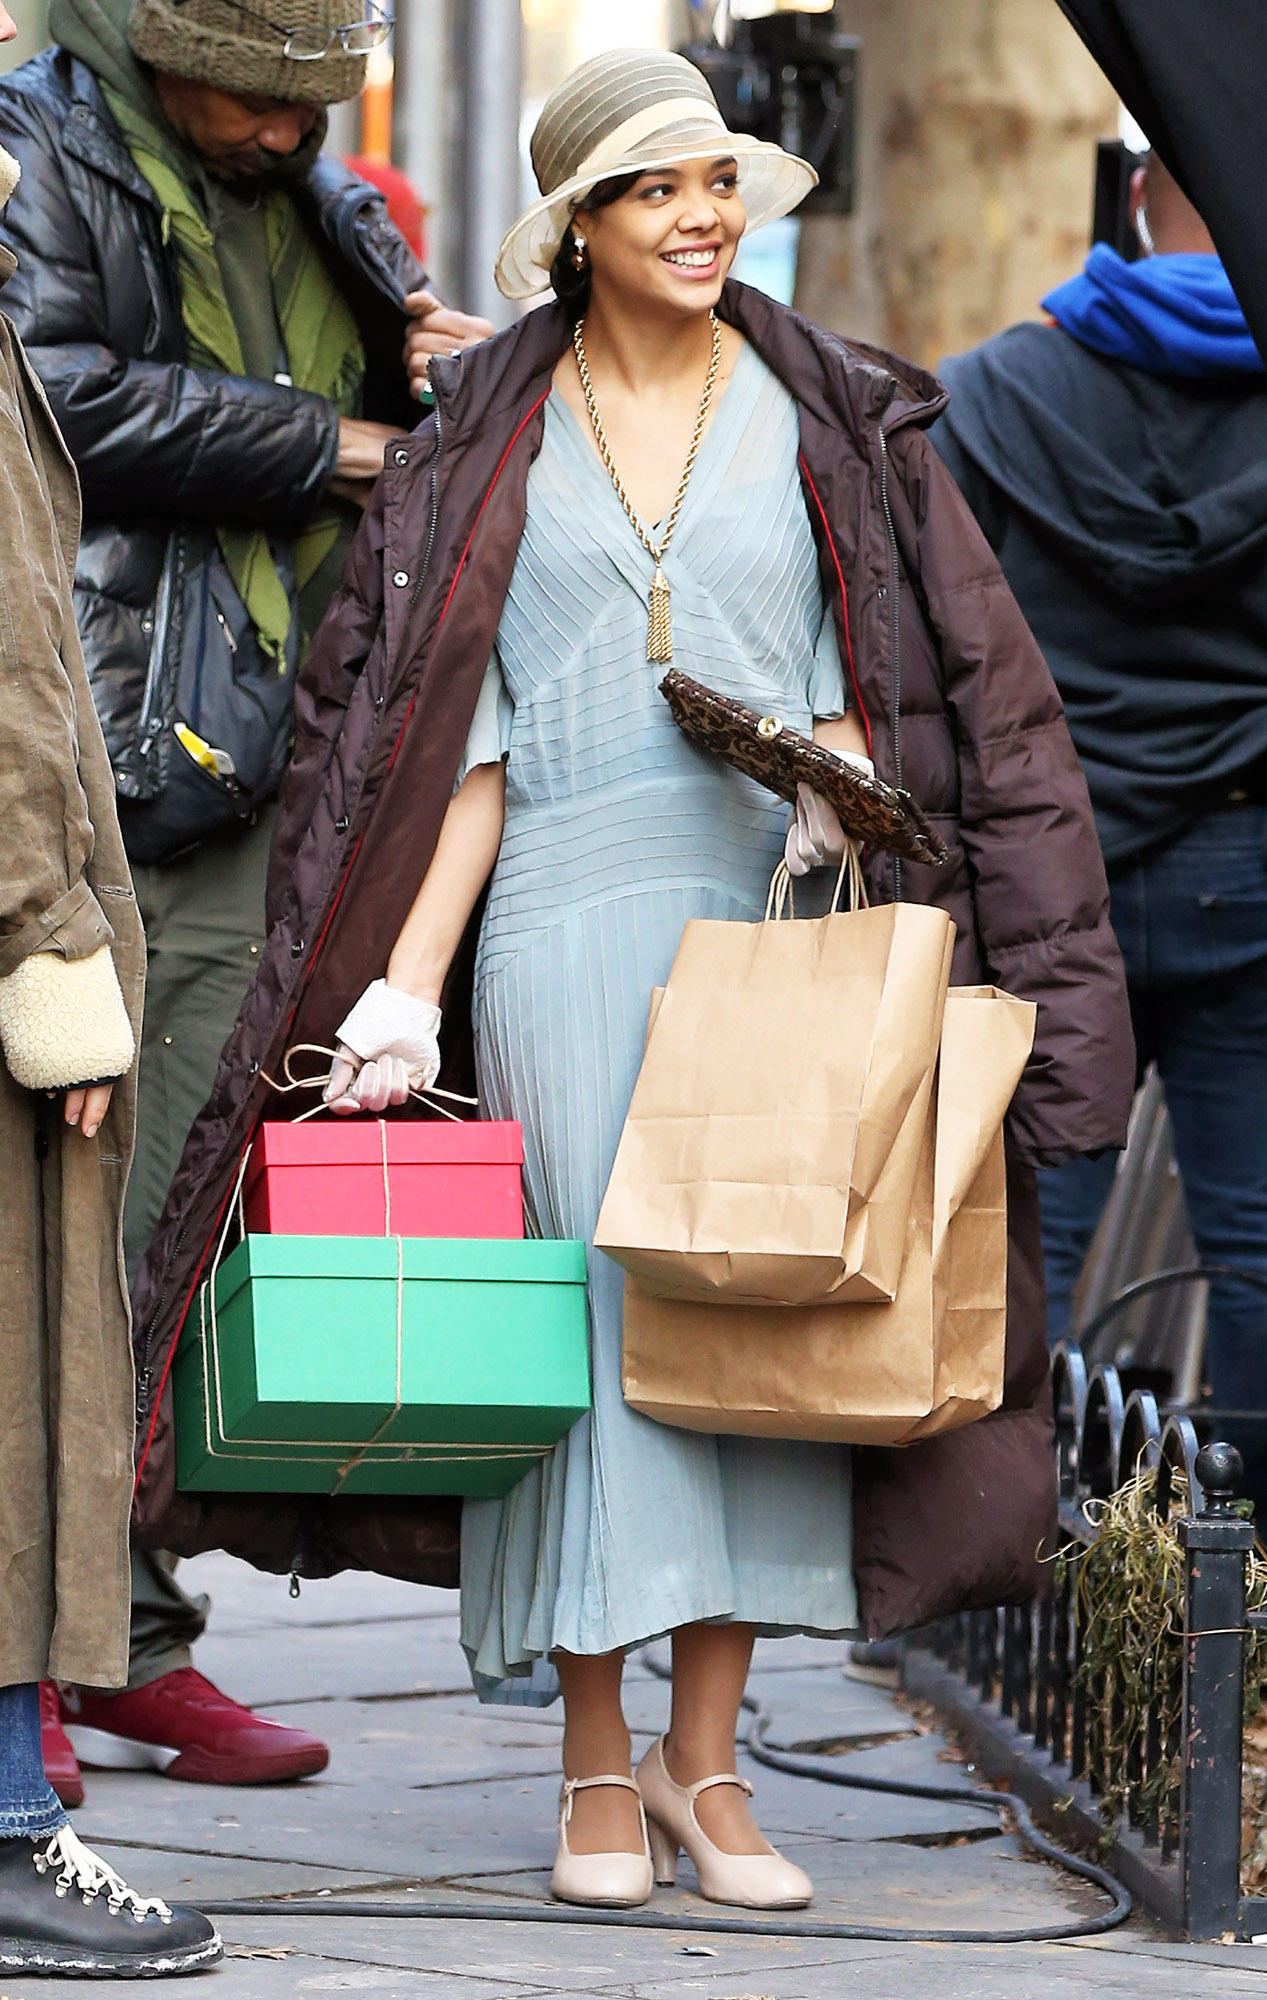 EXCLUSIVE: Actress Tessa Thompson Is Seen In 1920's Period Costume On The Set Of 'Passing' Filming In Brooklyn, New York